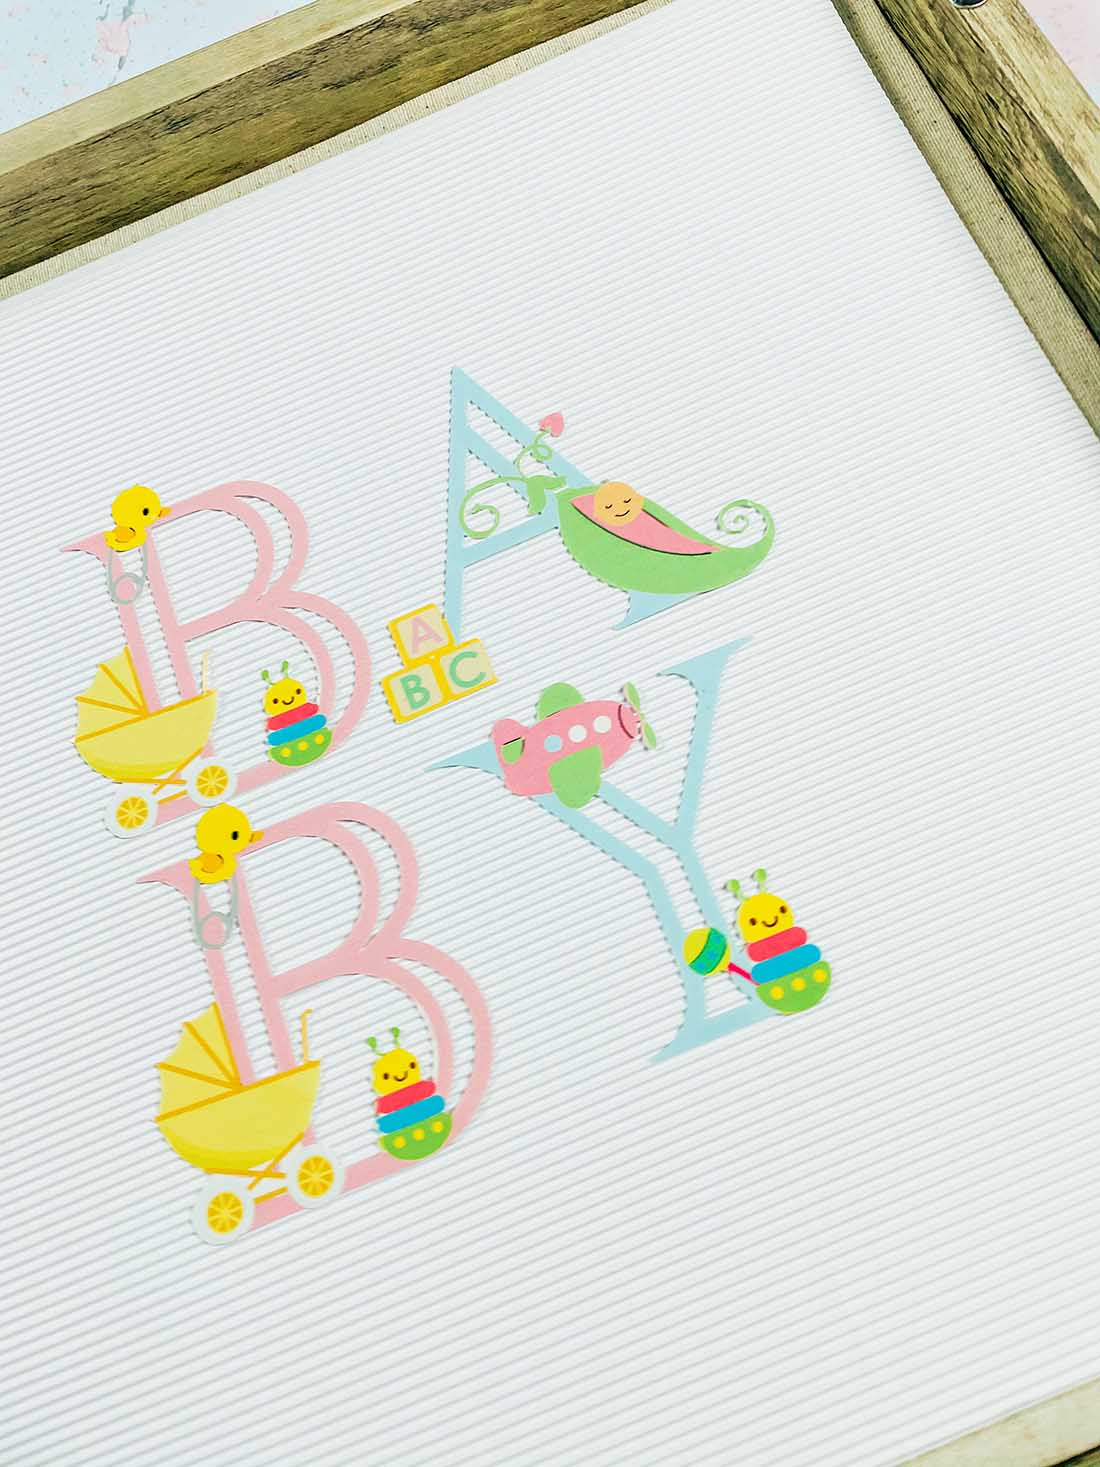 Printable baby Alphabet for creating Cricut Baby gifts